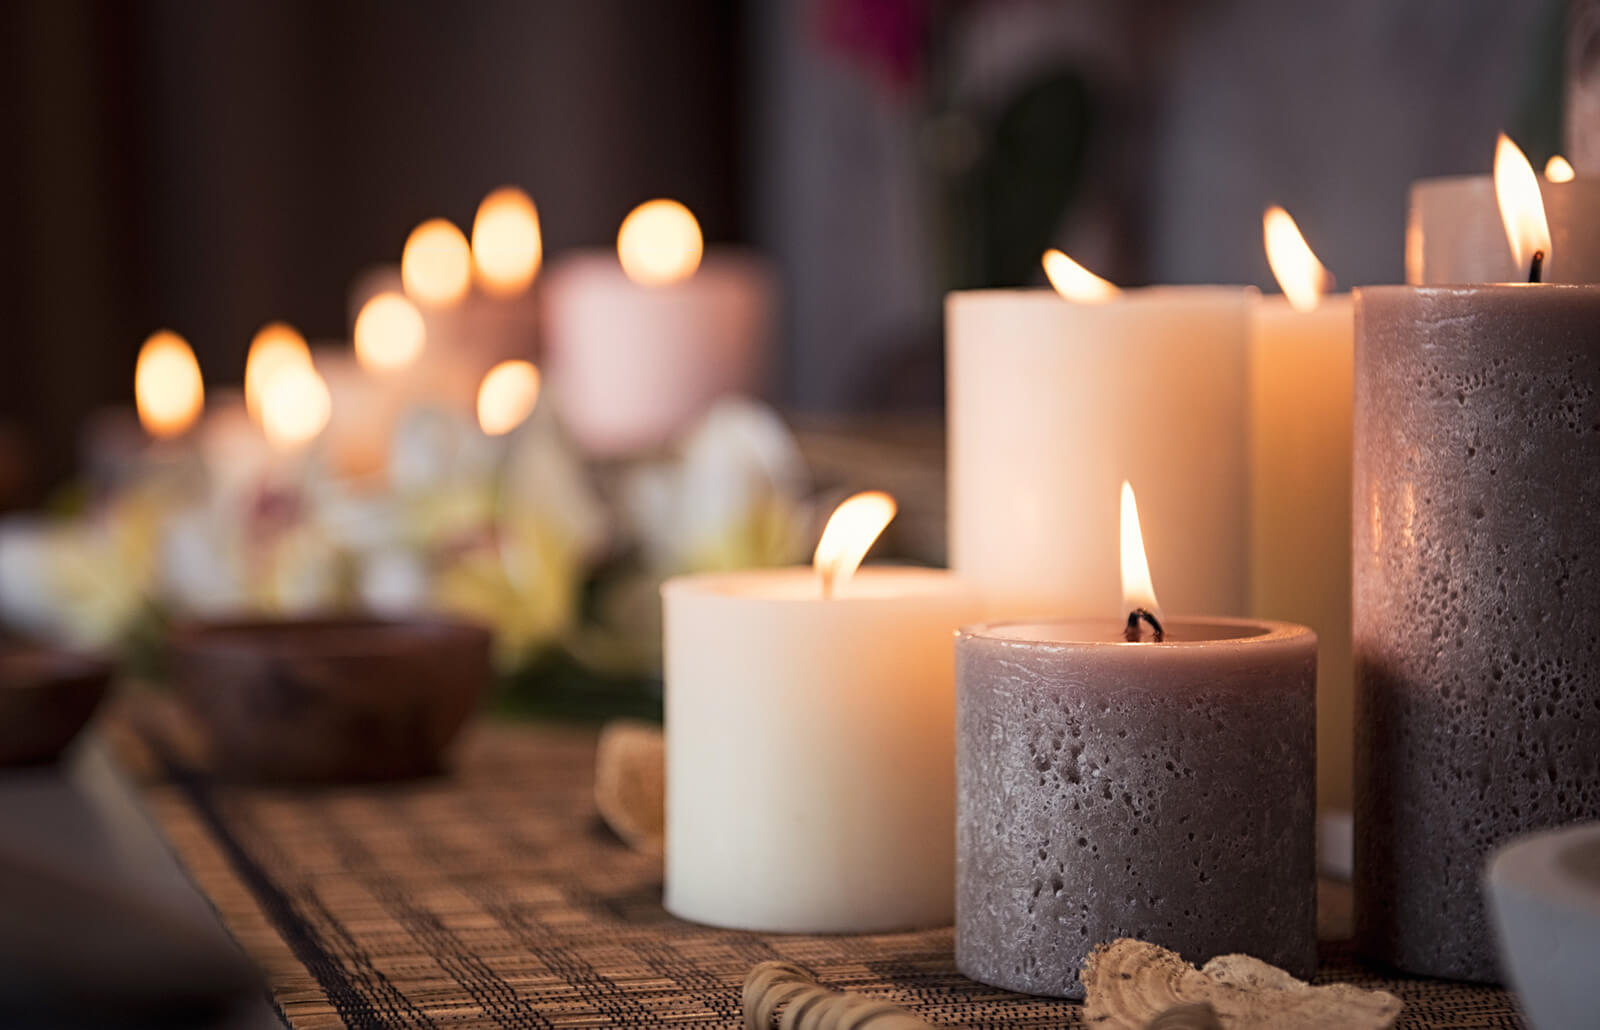 Decorating With Candles | LoveToKnow